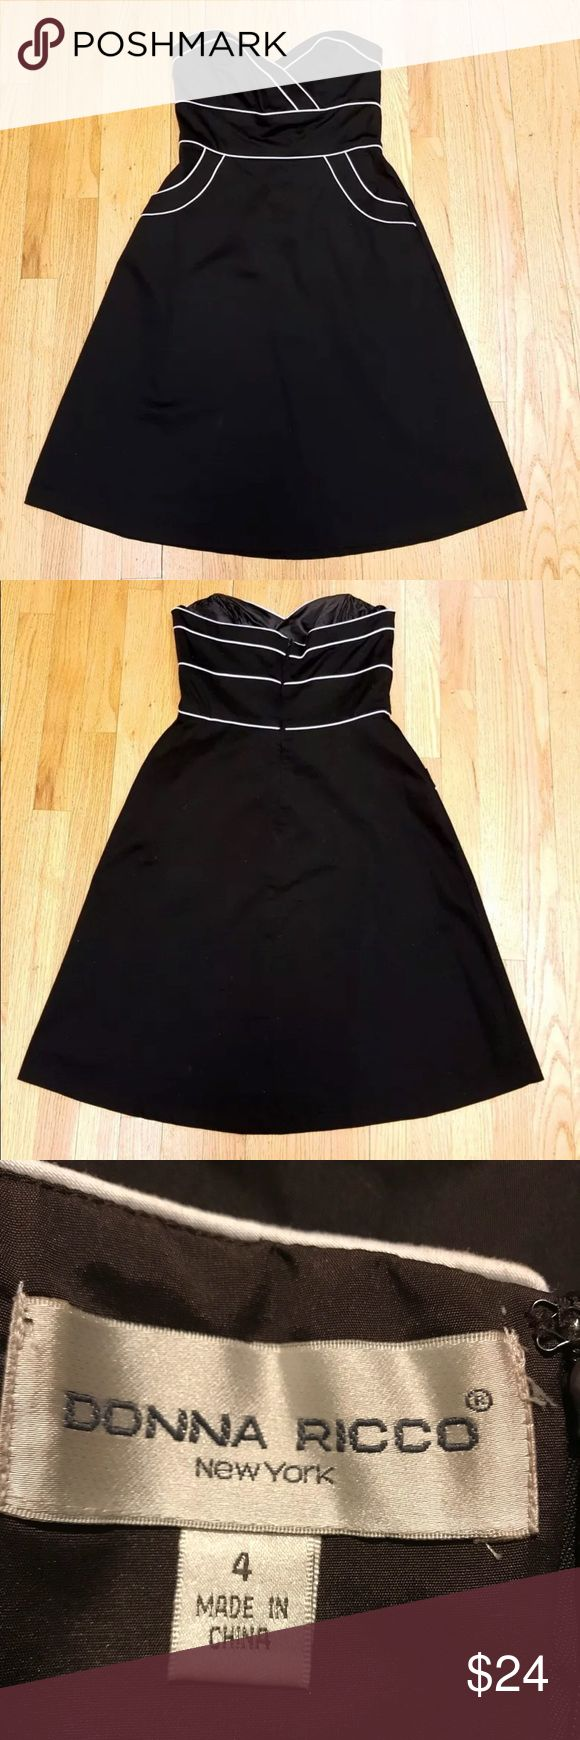 Donna Ricco Dress Strapless Brown Trimmed in White, 2 Pockets on the Front. Zips closed In The Back. 97% Polyester / 3% Spandex. Measures 17 inches across chest, armpit to armpit.  Waist is 14 inches.  Hips 20inches. Length from shoulder 32 inches. Donna Ricco Dresses Strapless